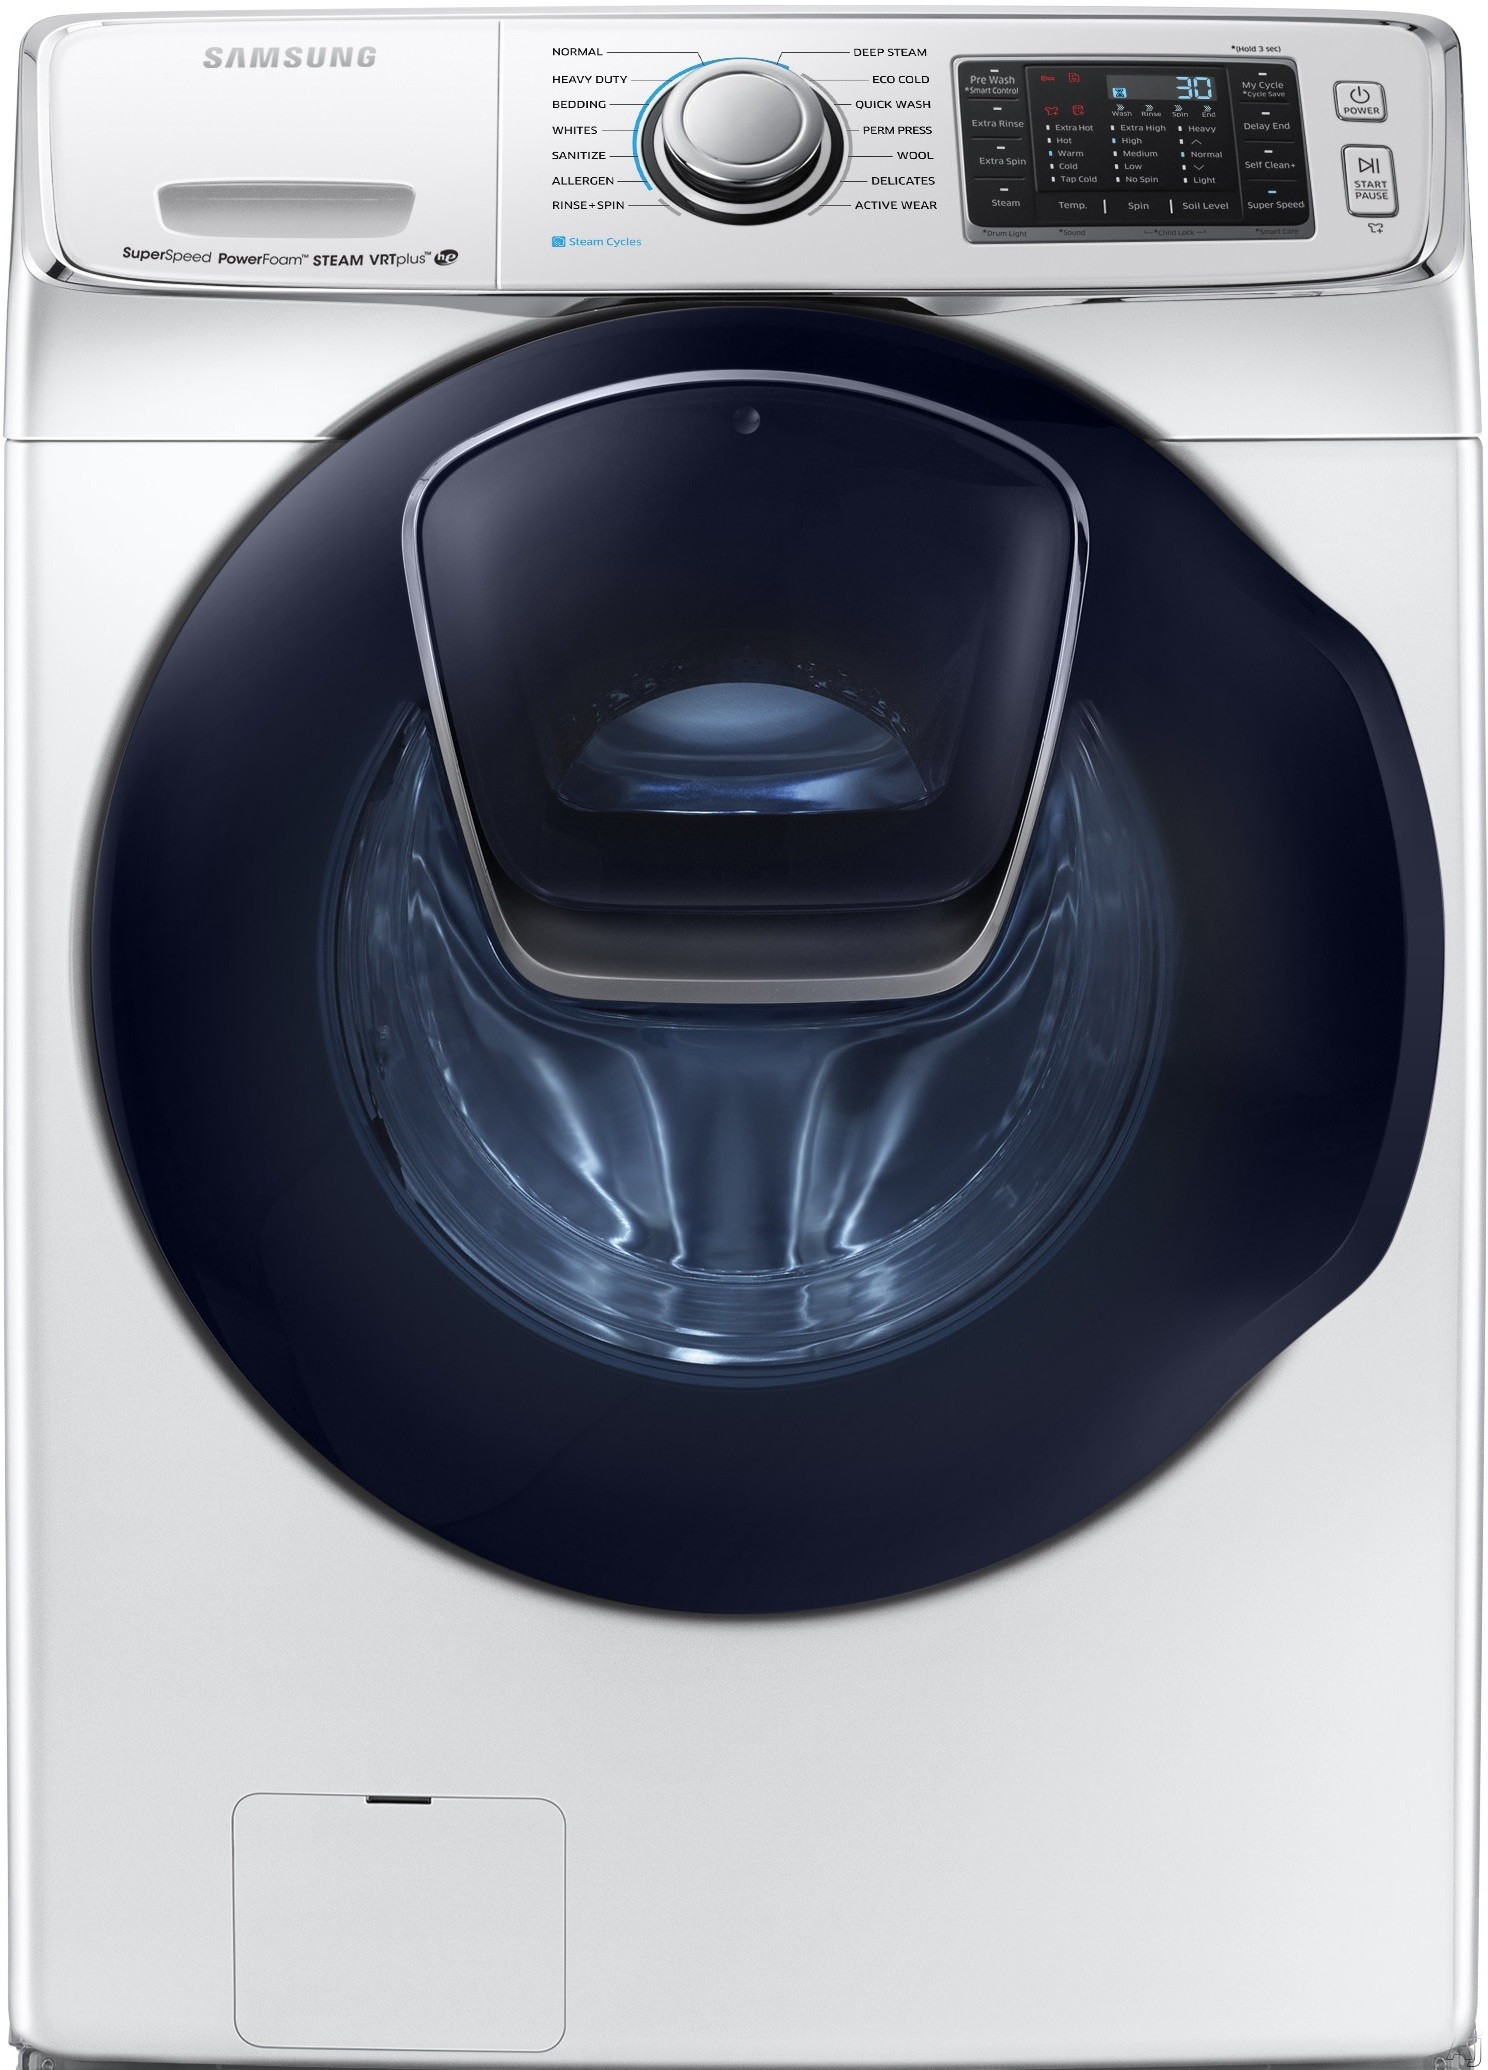 "WF50K7500AW 27"""" Energy Star Front-Load Washer with Large 5.0 cu. ft. Capacity  AddWash Door and Super Speed:"" 685819"